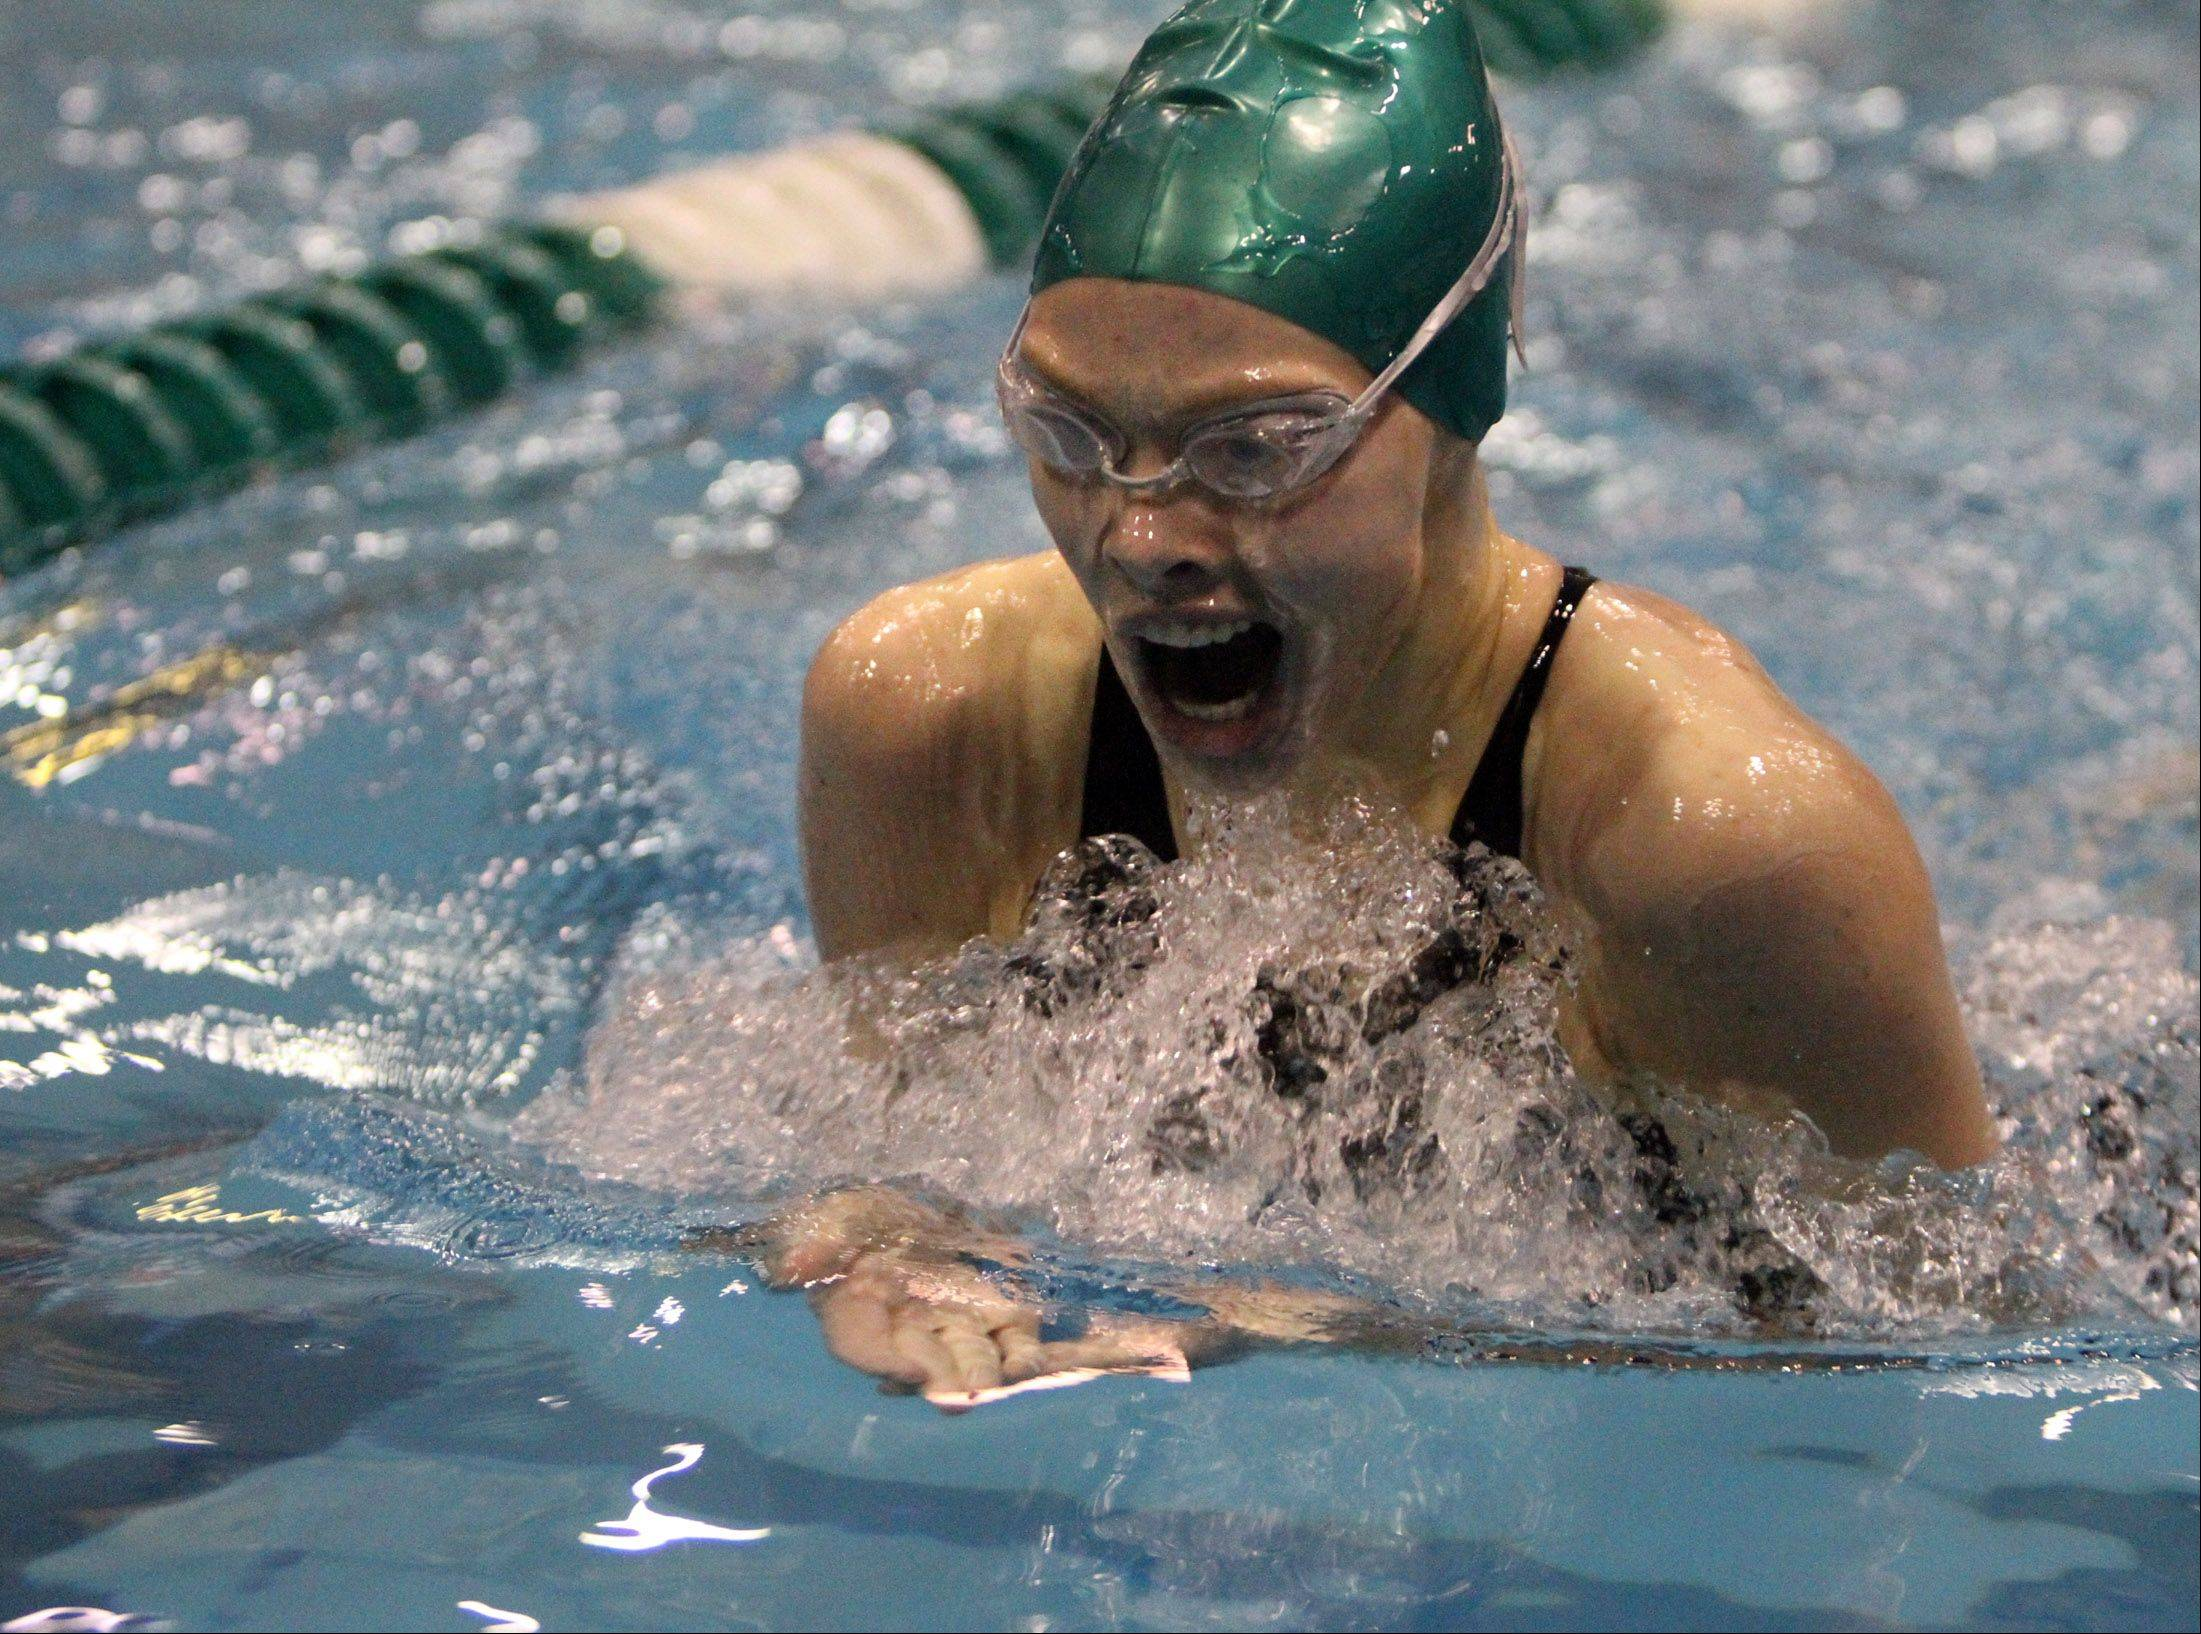 Grayslake Central's Marissa Engel competes in the 200-yard individual medley at IHSA state final preliminaries.